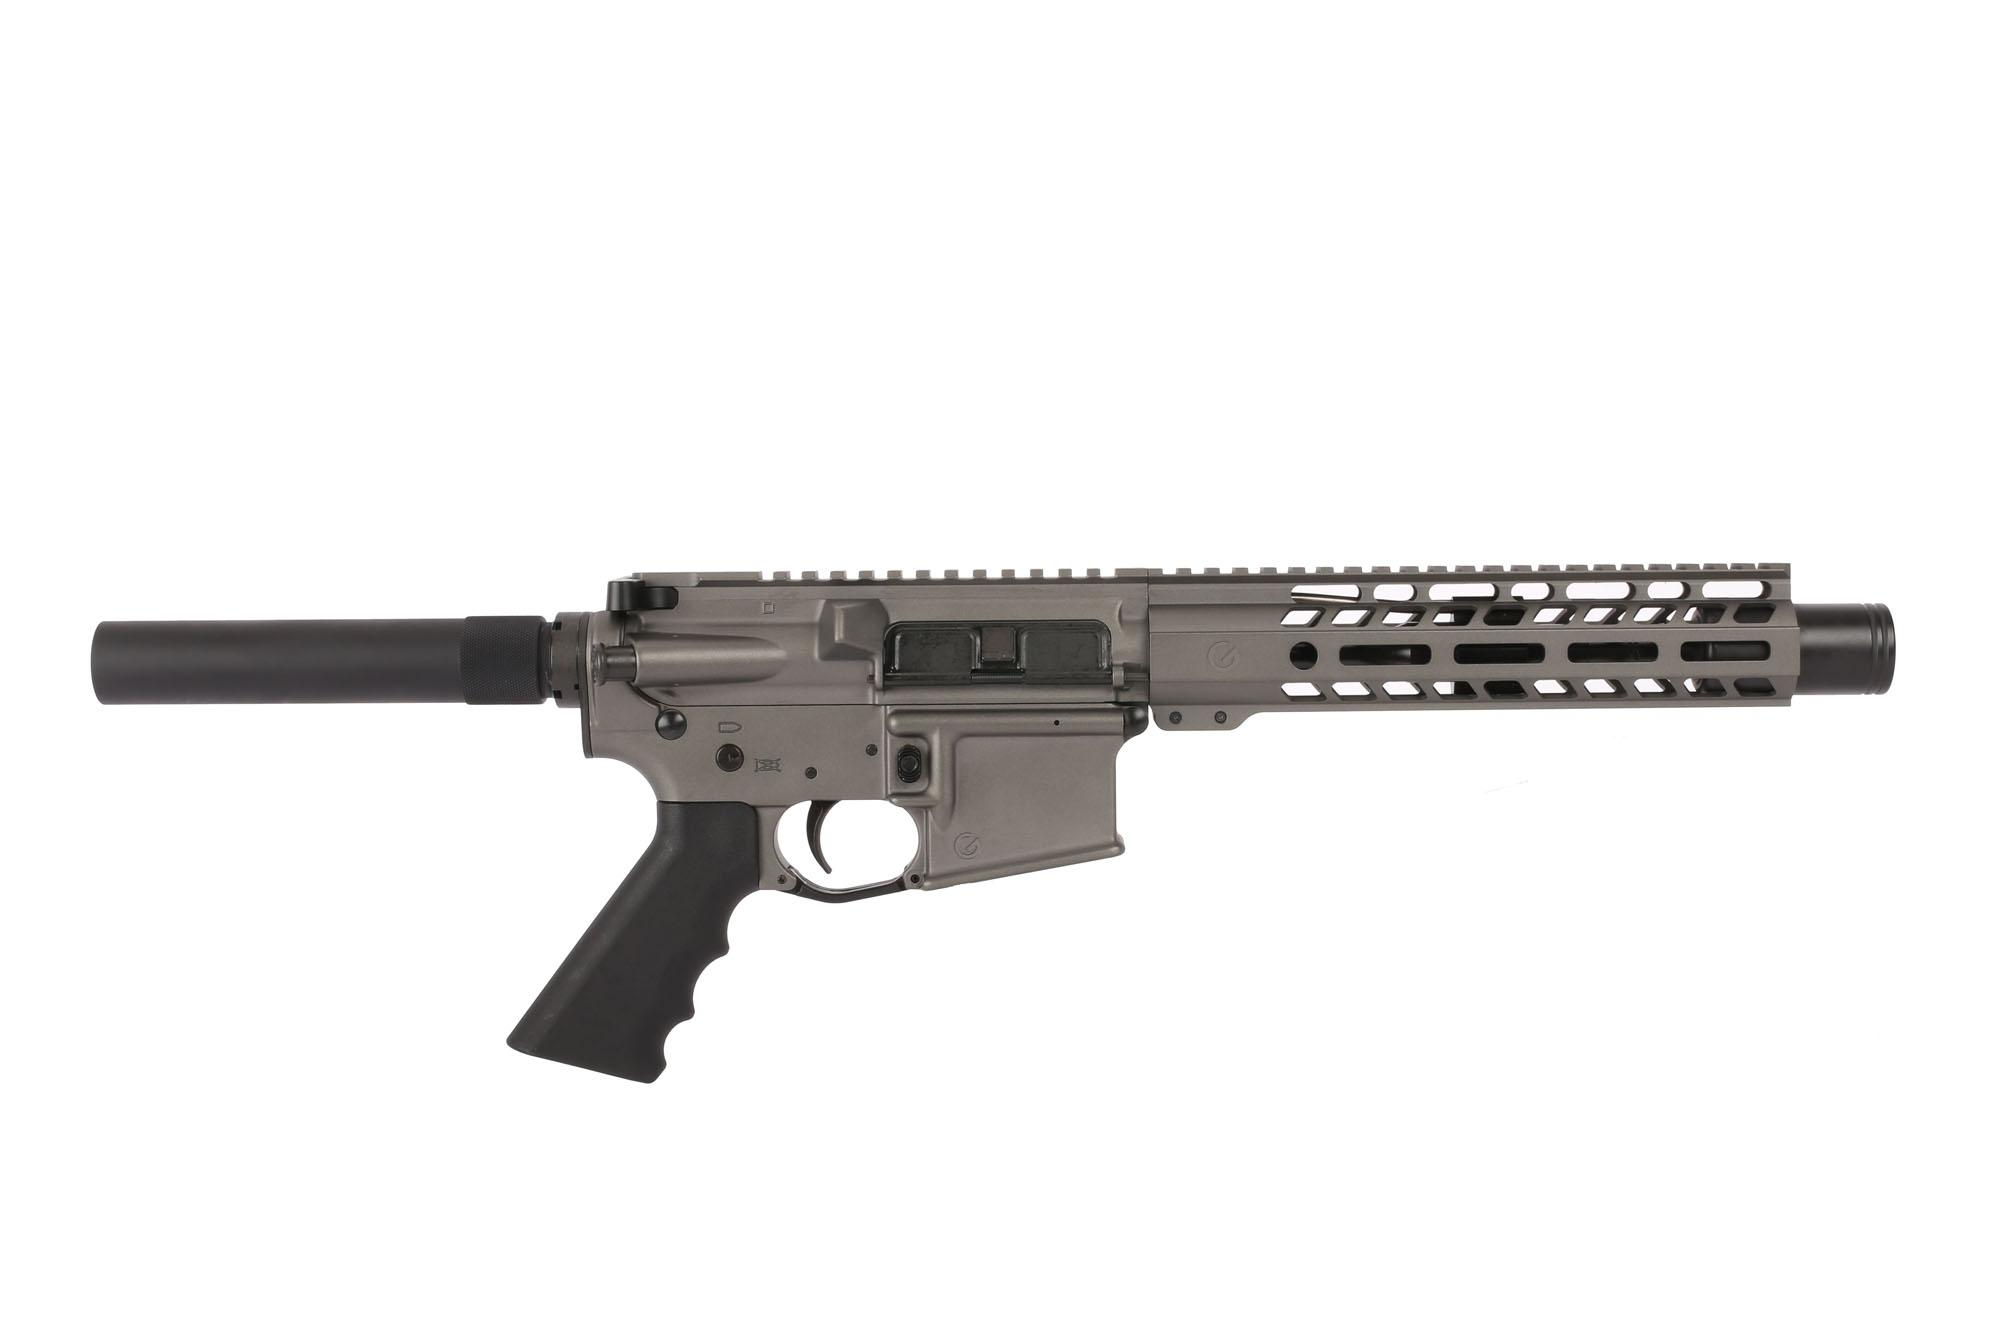 The Ghost Firearms Tungsten Gray AR Pistol features a 7.5 inch barrel and M-LOK handguard